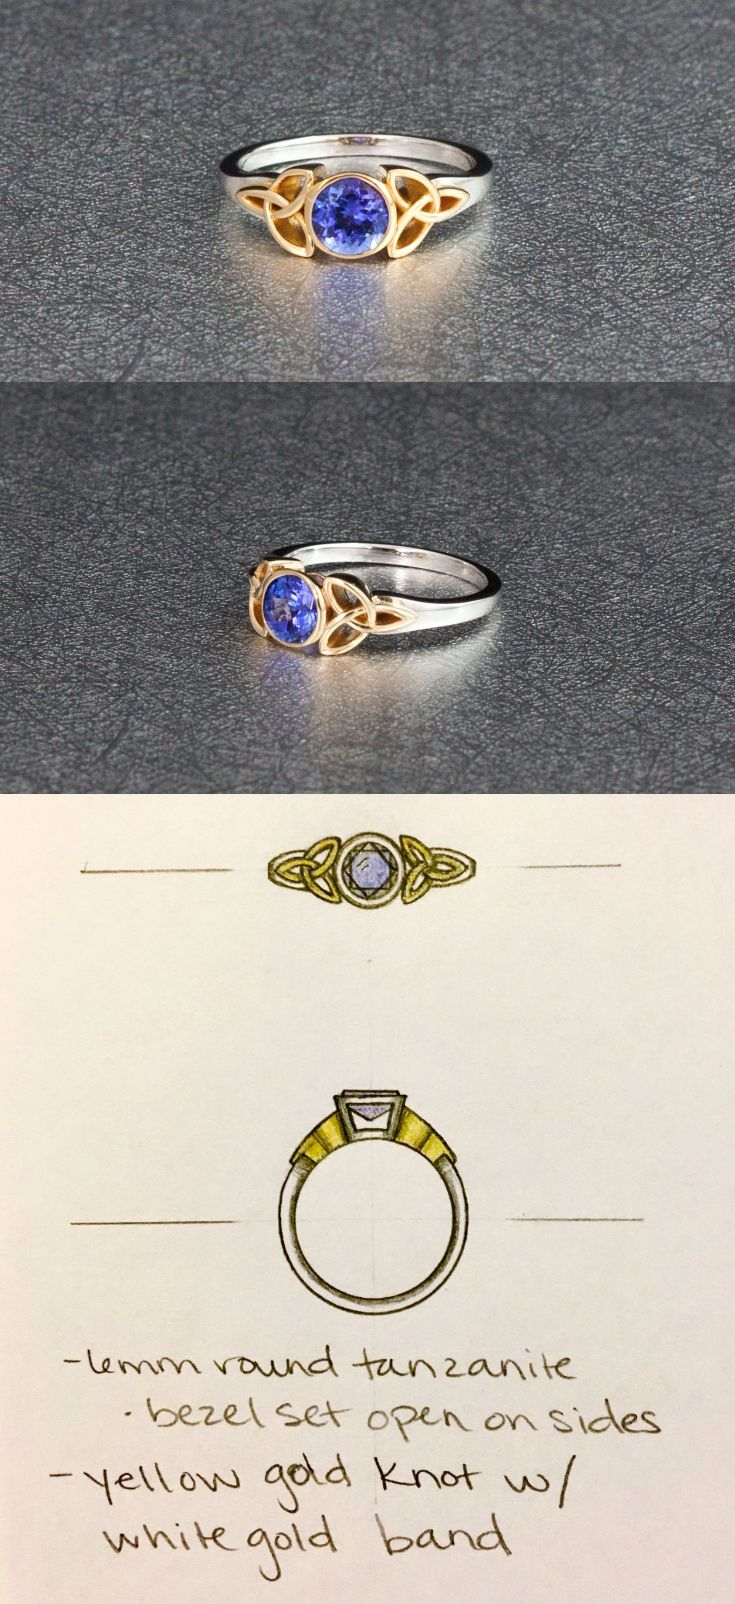 A perfect celtic-inspired engagement tanzanite engagement ring! The purple-blue of tanzanite pops perfectly against its yellow gold bezel surrounded by trinity knot shoulders. This center feature is set against a contrasting white gold shank for a brighter pop of color. A great case of the customer knowing exactly what elements she wanted (the tanzanite, mixed metals, trinity knot), so we just had to help her create the perfect design to express her vision!